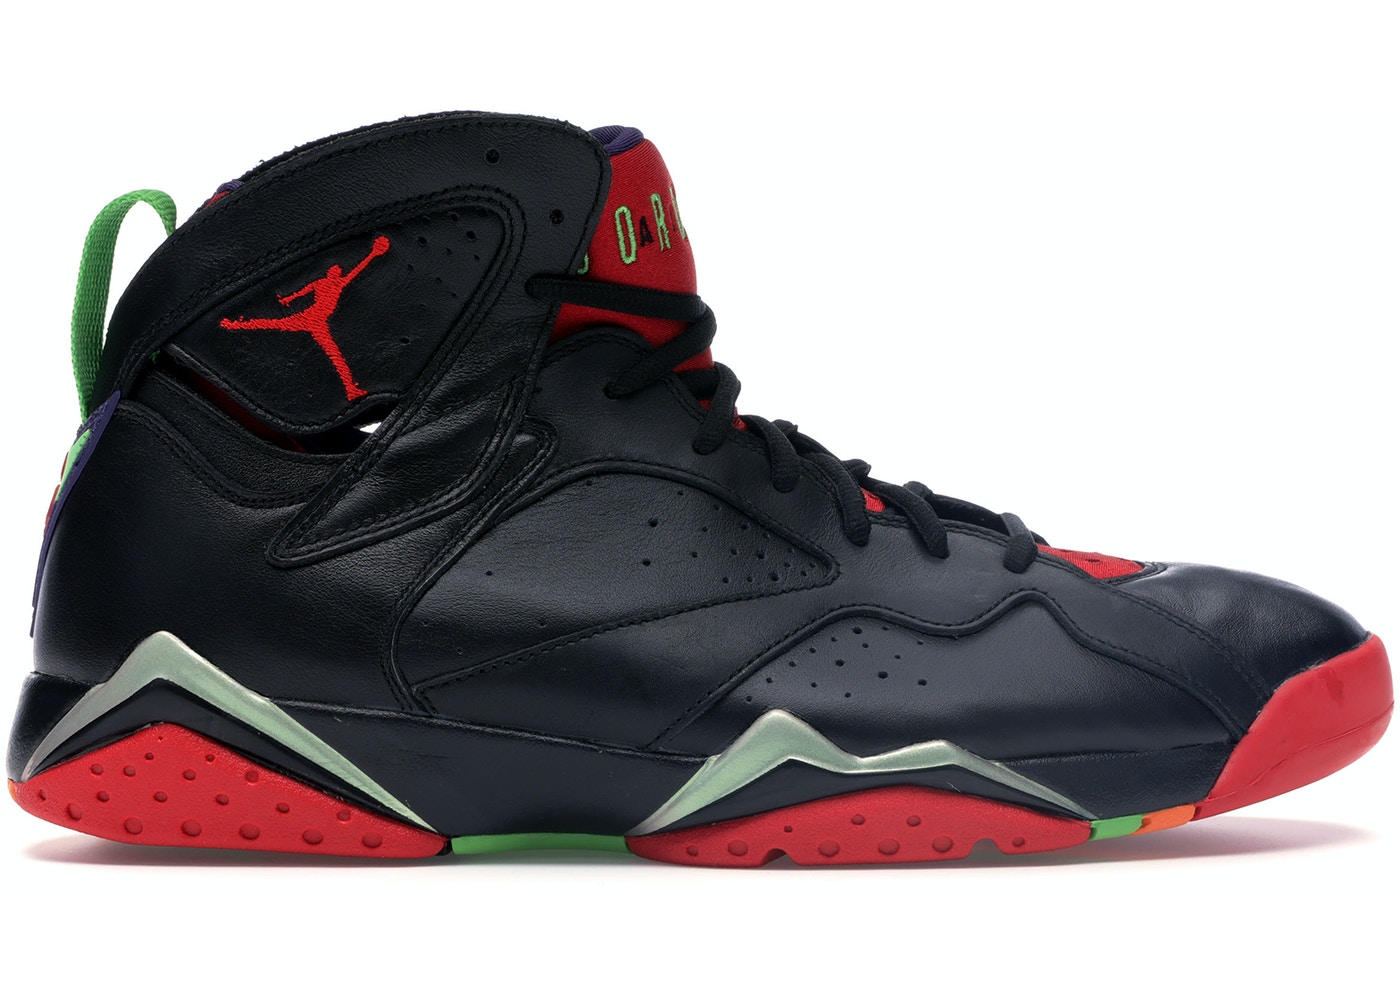 outlet store c8592 97700 Buy Air Jordan 7 Shoes   Deadstock Sneakers